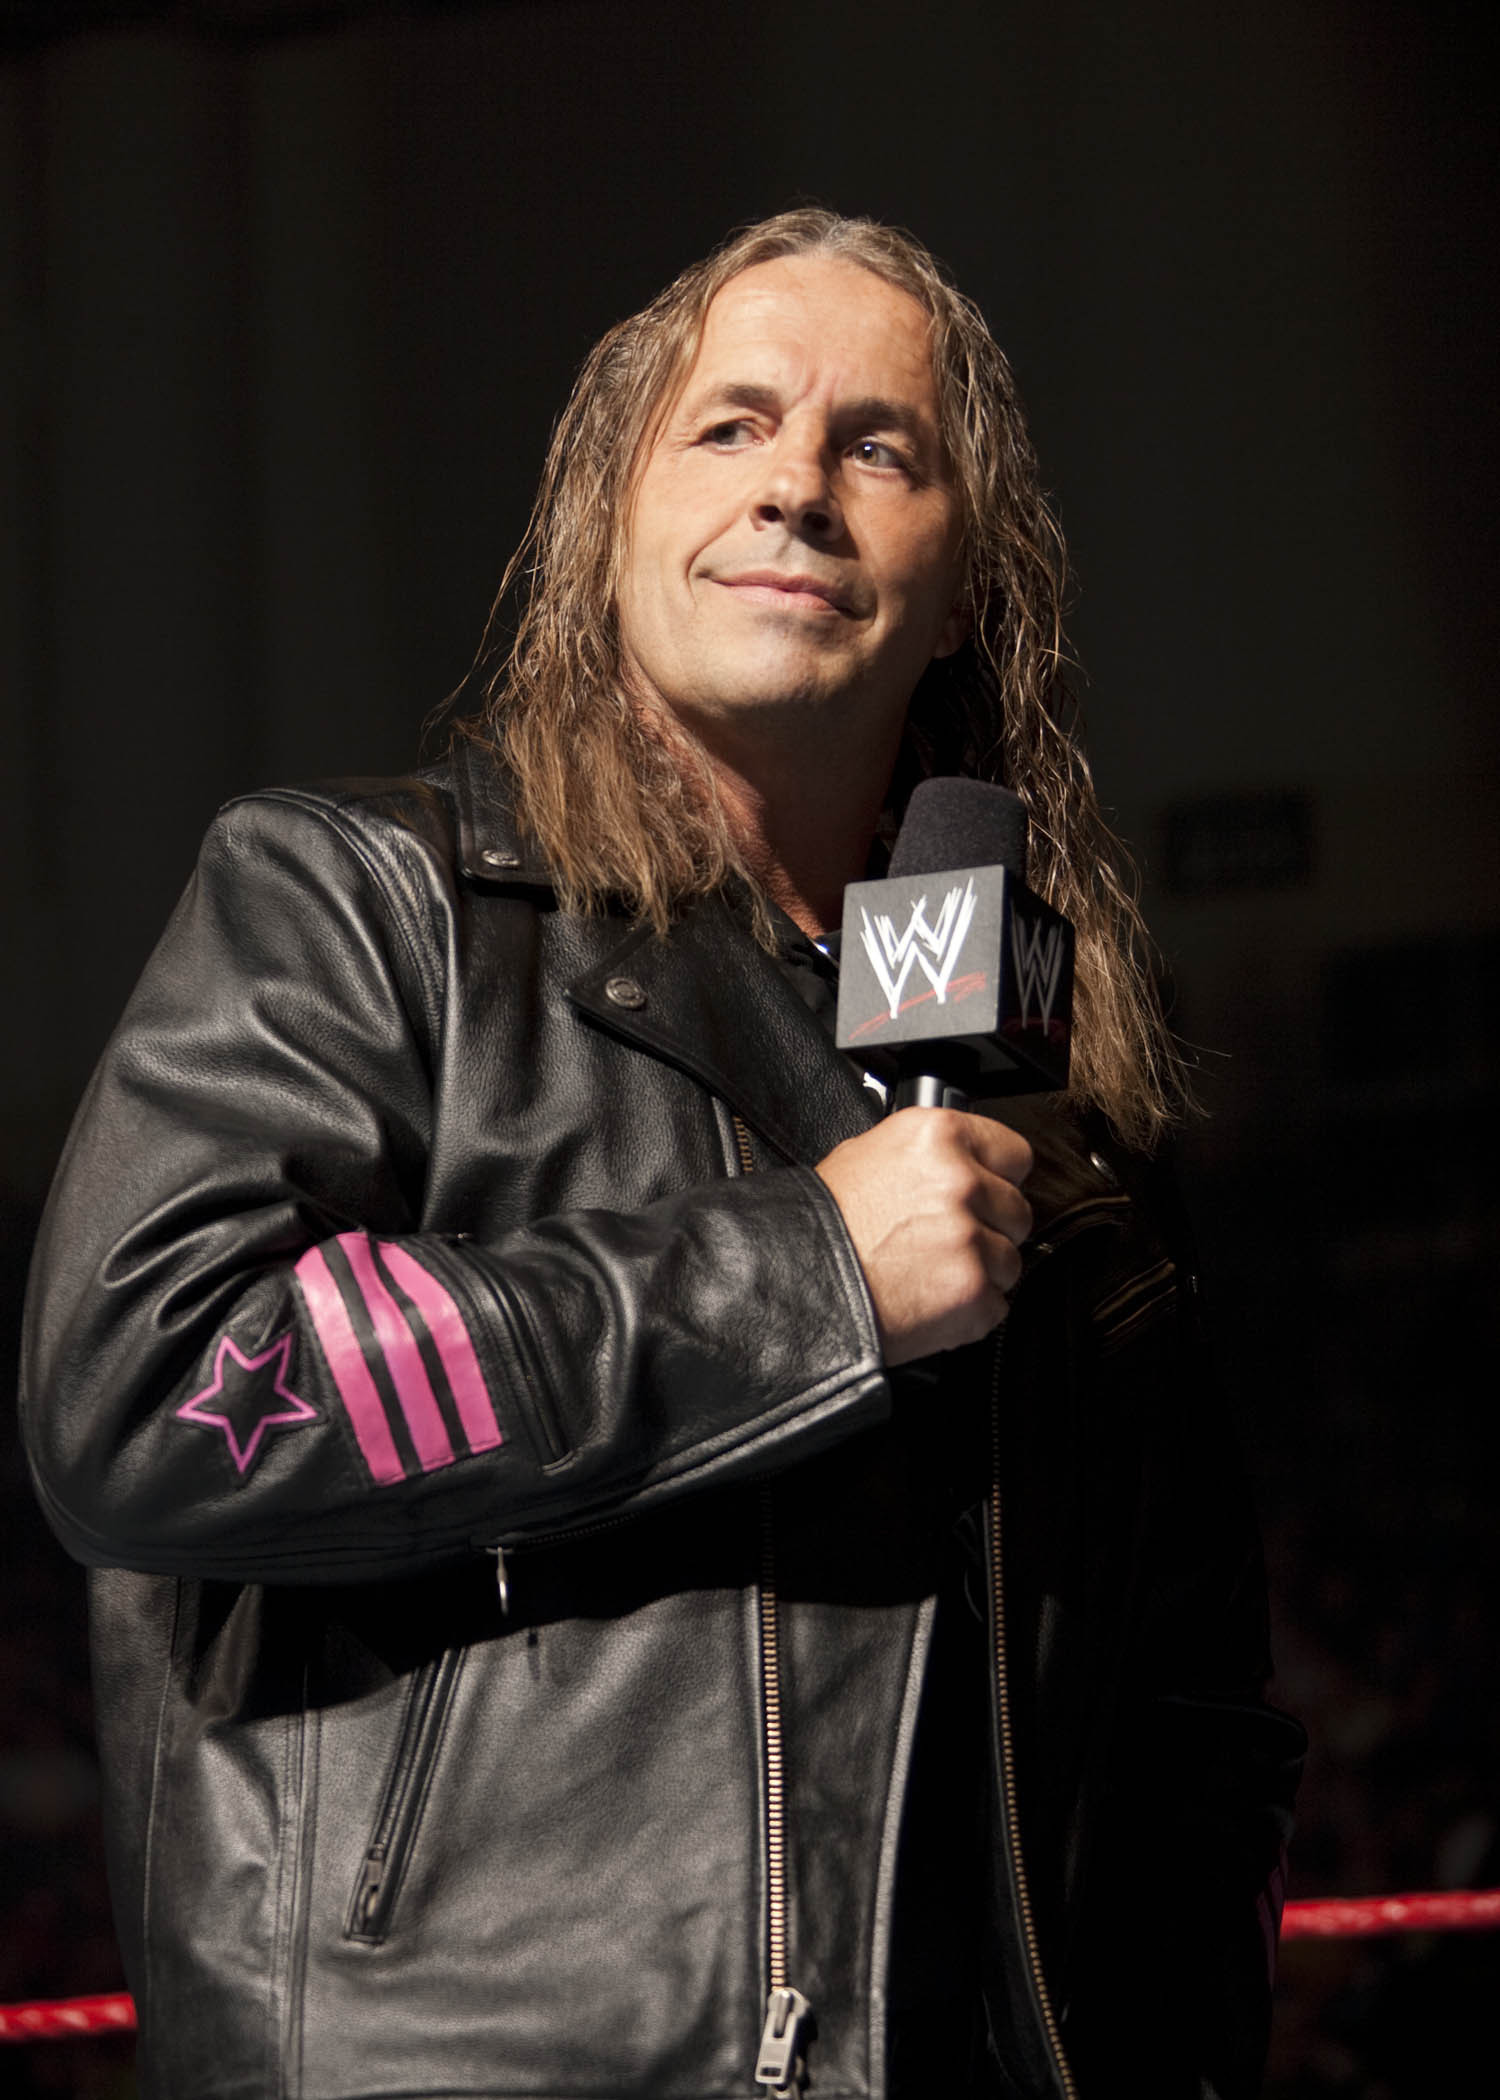 Wrestling and Shawn michaels